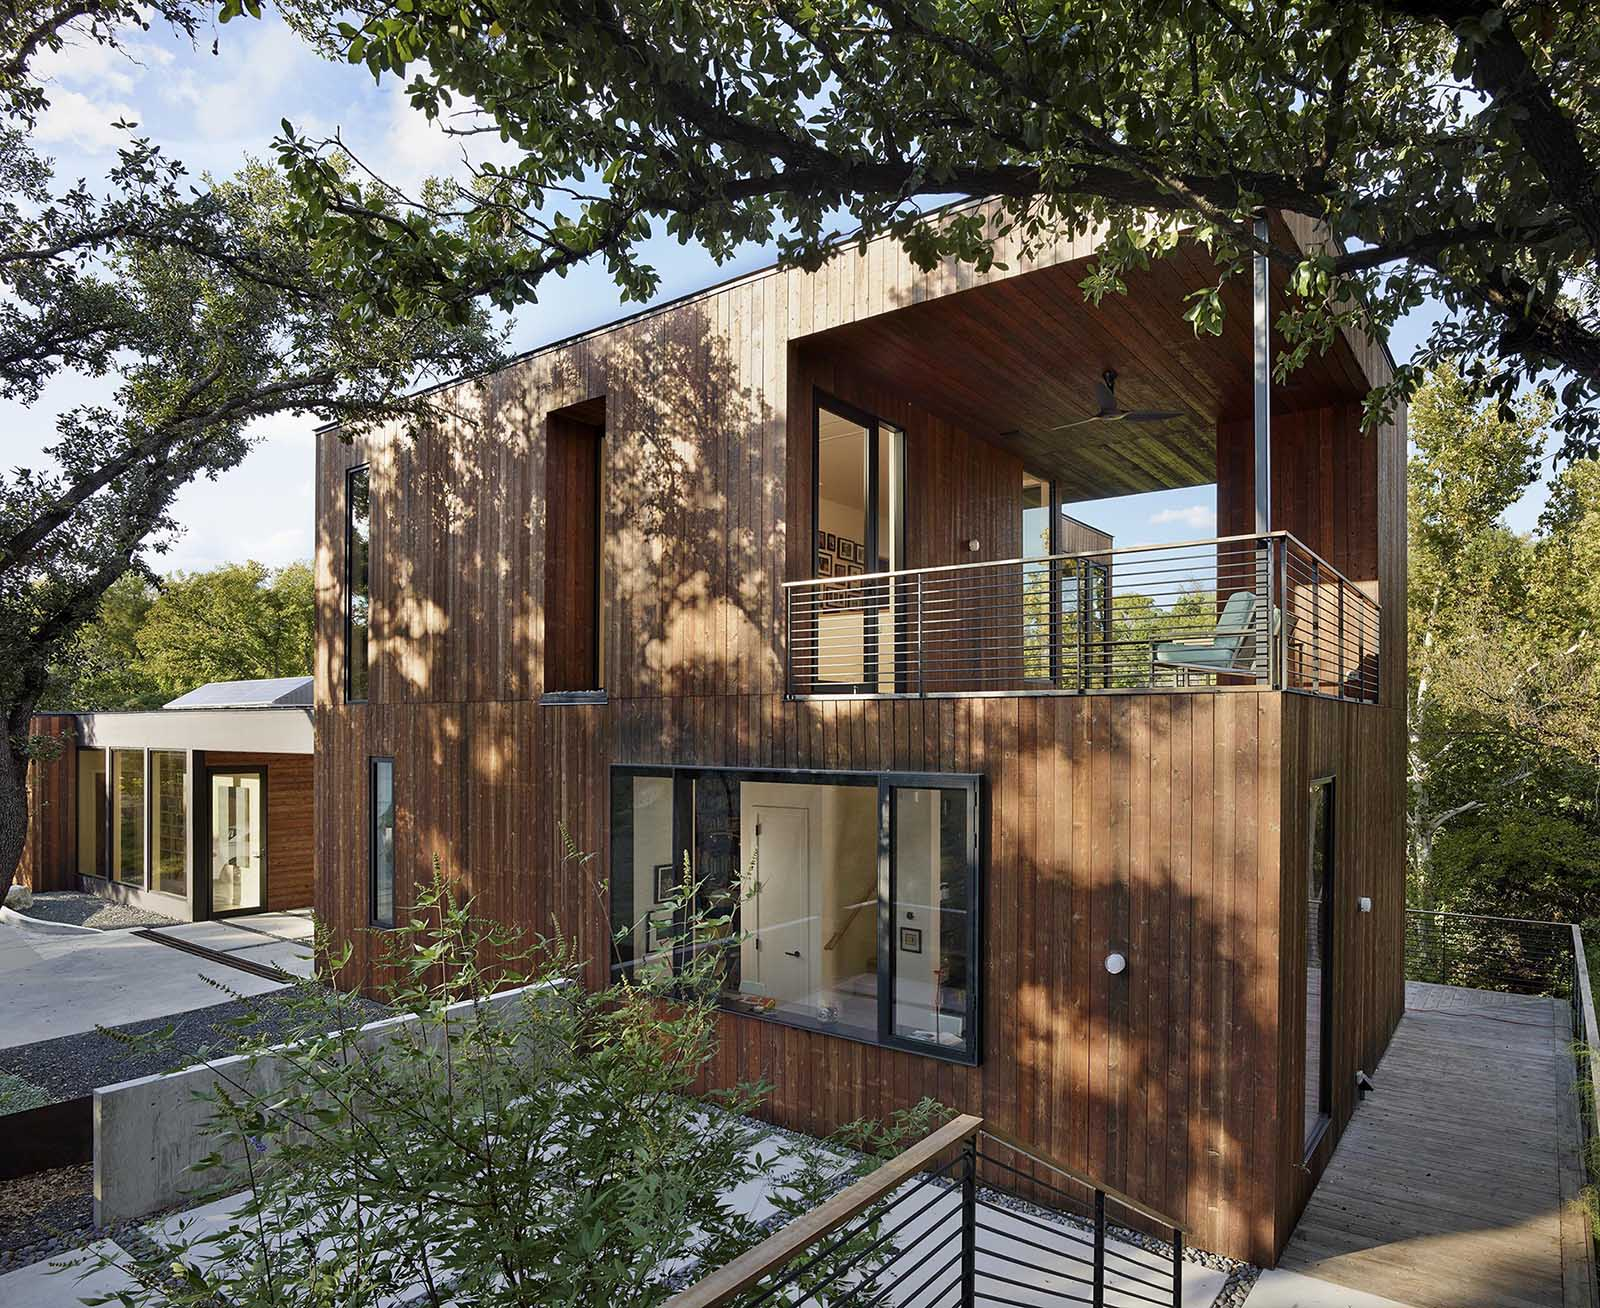 A modern home addition with a green roof and a wrap-around deck.